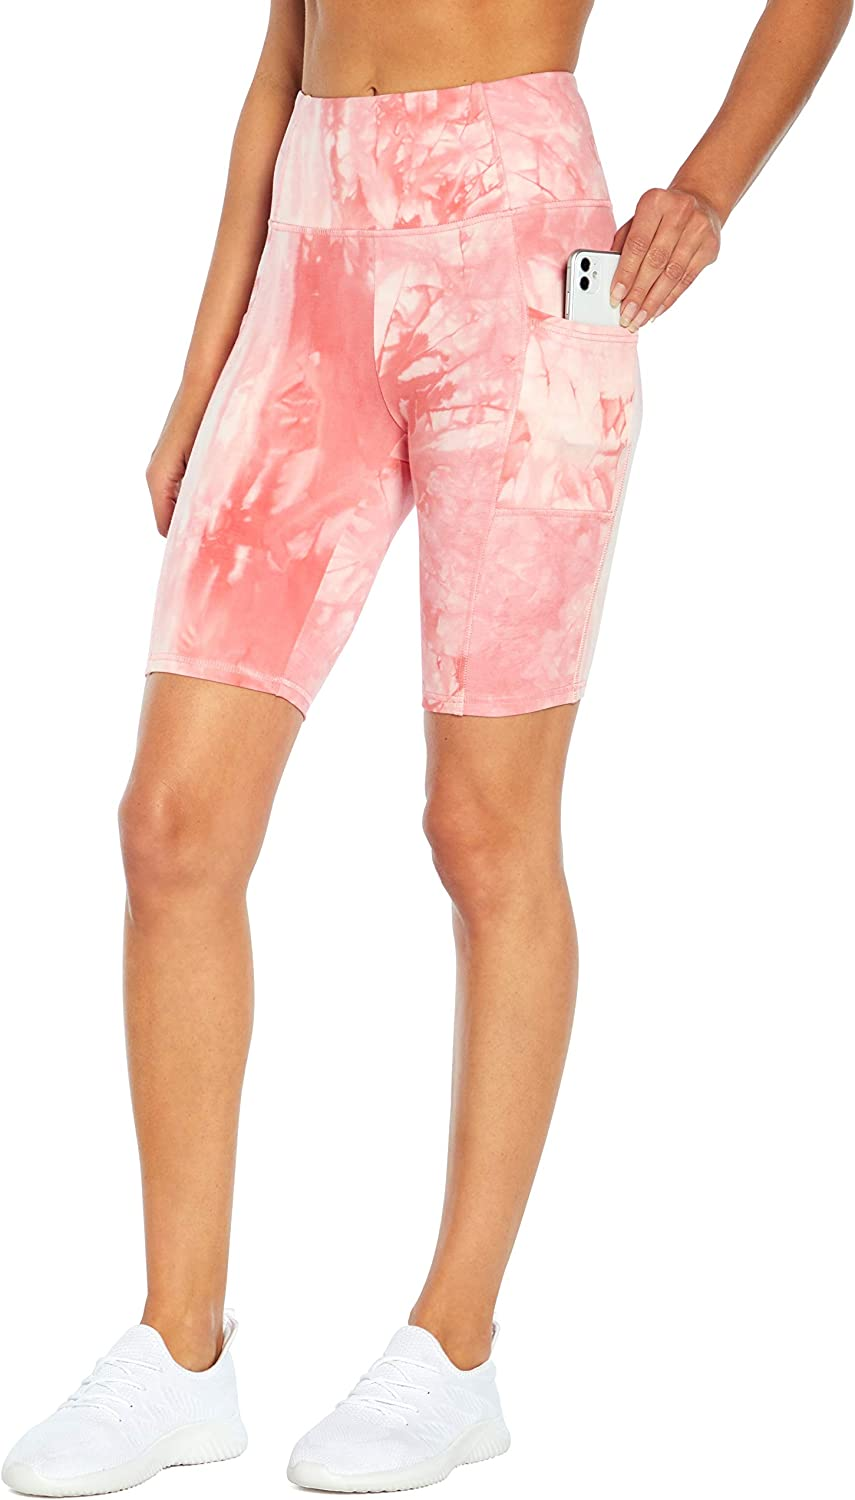 Sales of SALE items from new works Marika Women's Bambie High Short Rise Limited time for free shipping Bermuda